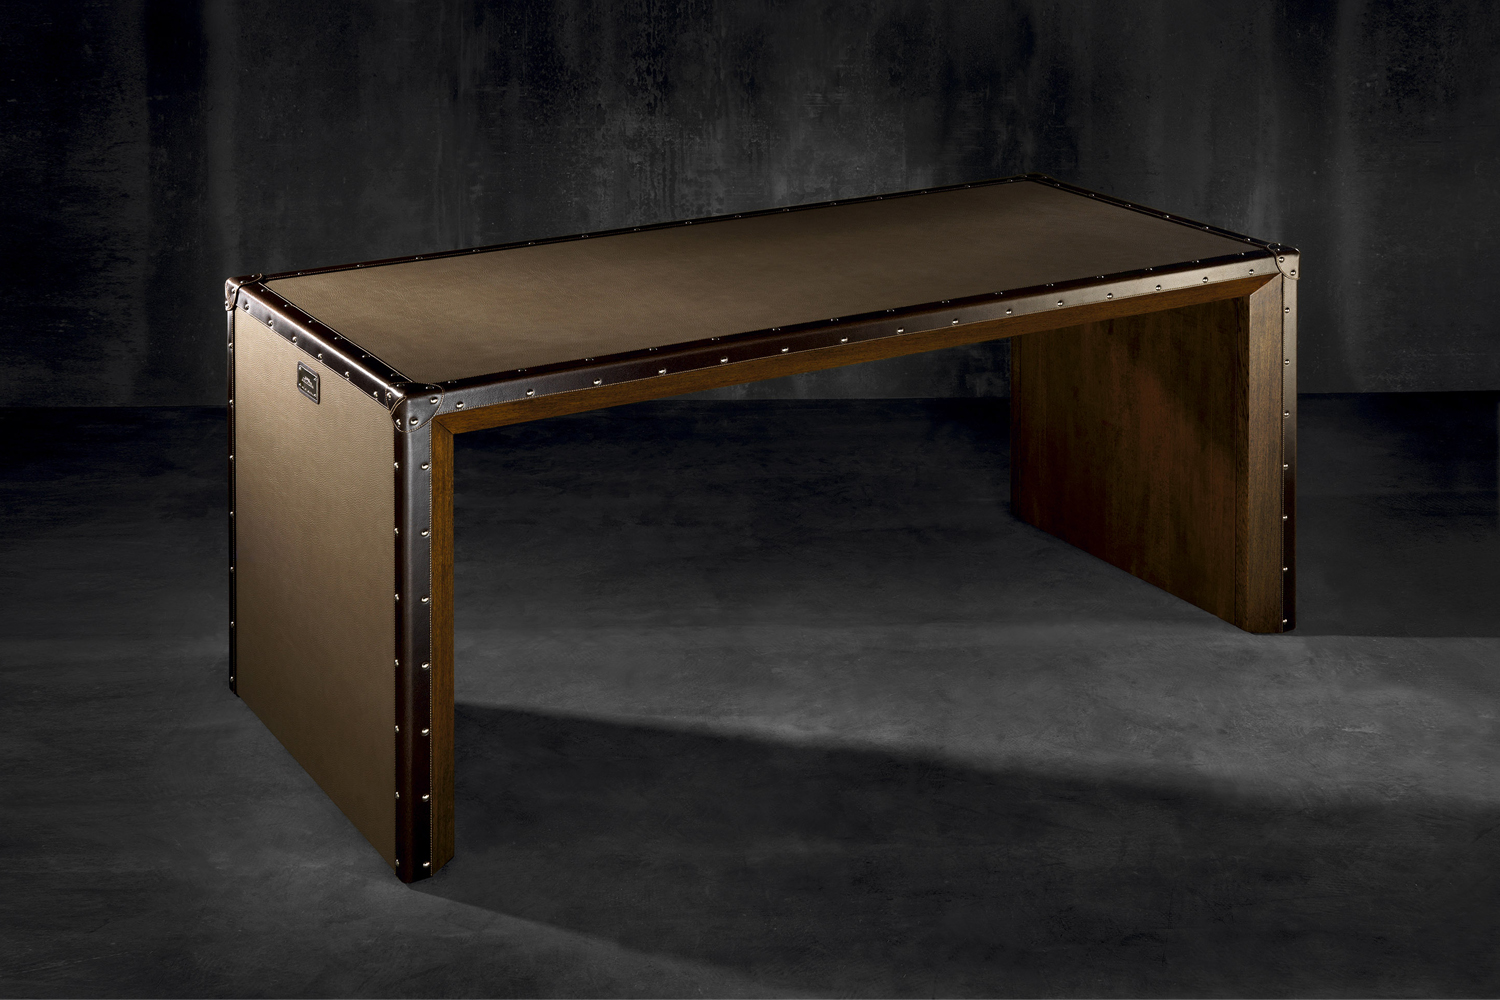 Office desks uk, fitted office furniture, contemporary desk